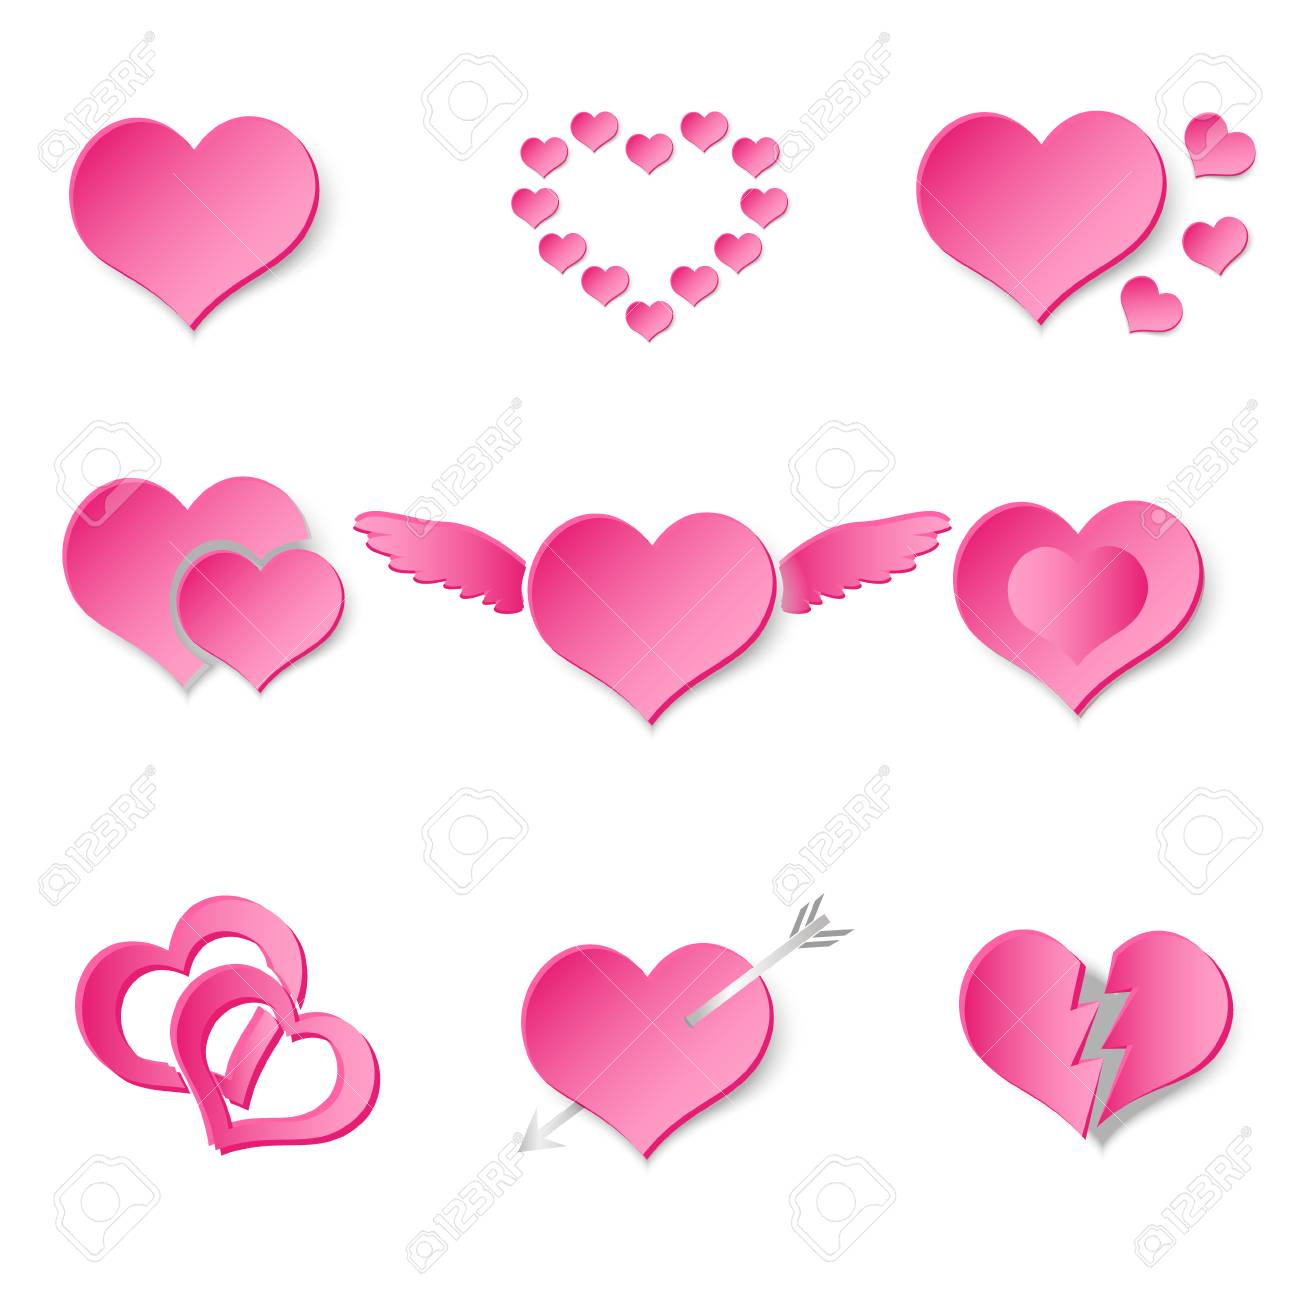 Set of pink paper style valentine hearth love symbols royalty free set of pink paper style valentine hearth love symbols stock vector 70914504 buycottarizona Gallery